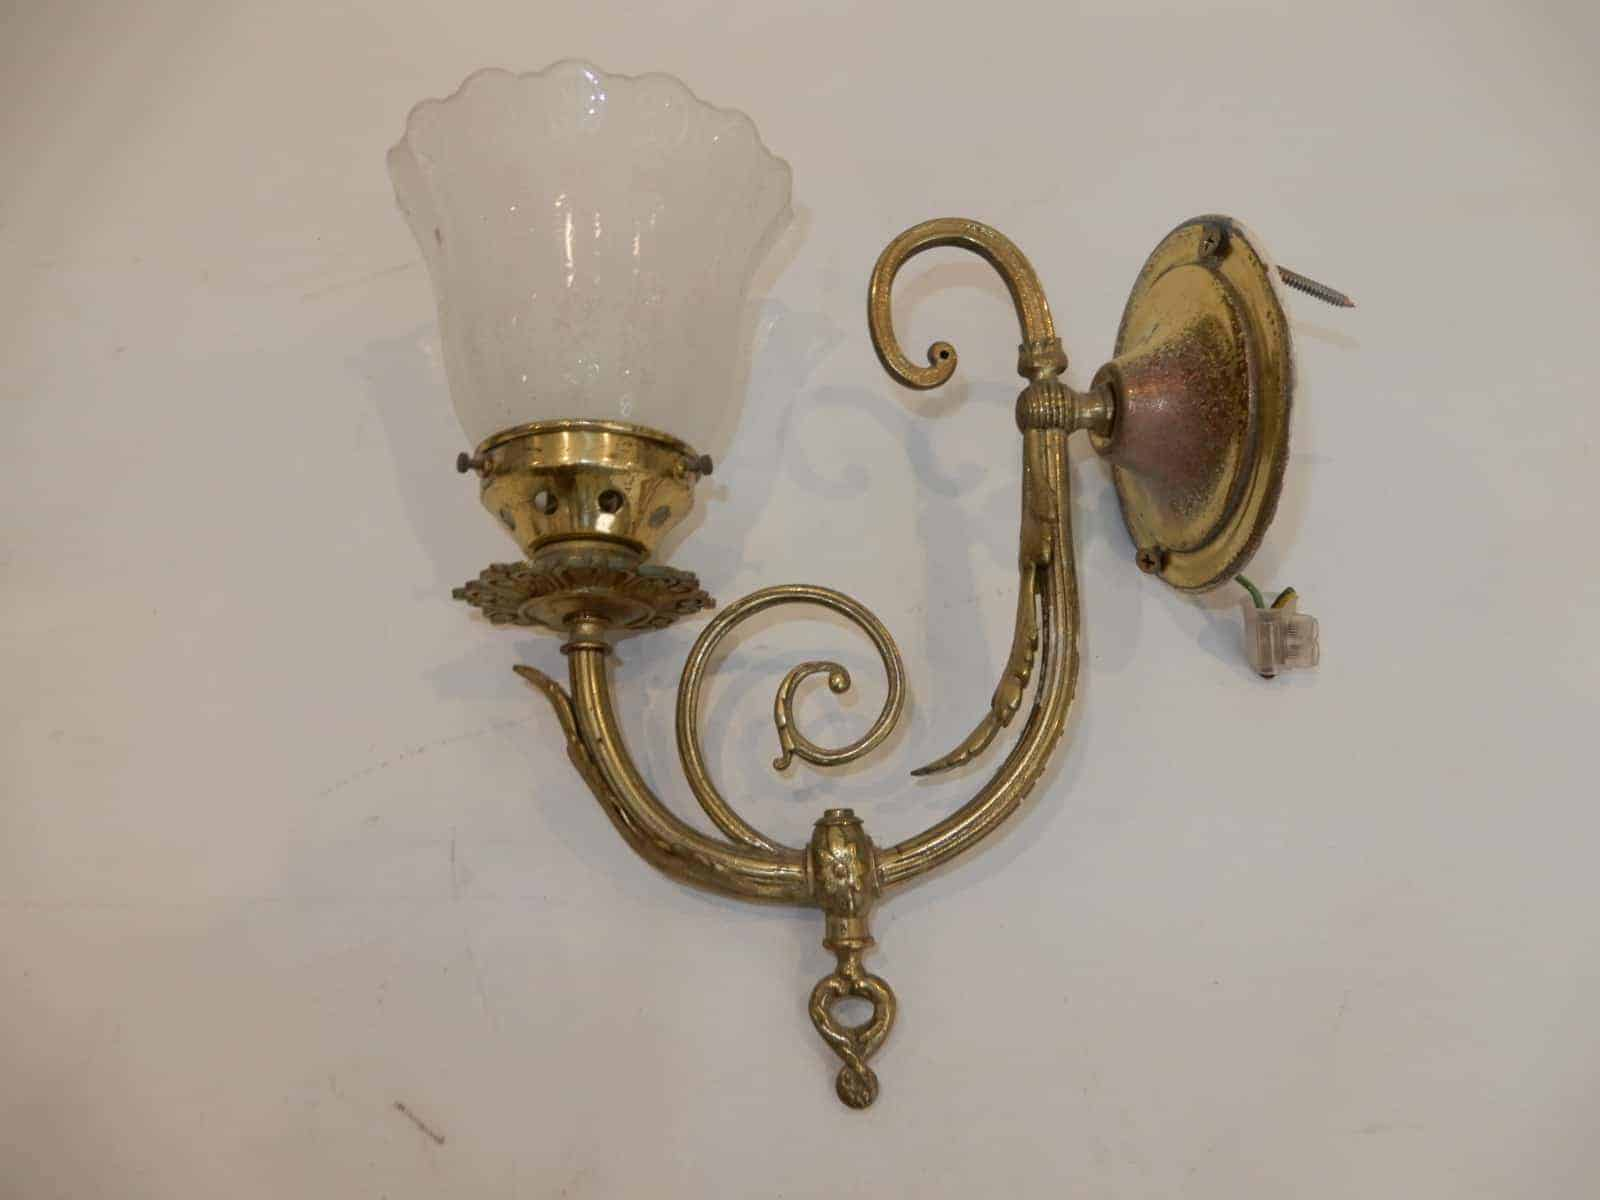 Wall Light Wall Sconce Light Ornate Brass Arm Etched Glass Shade 4z